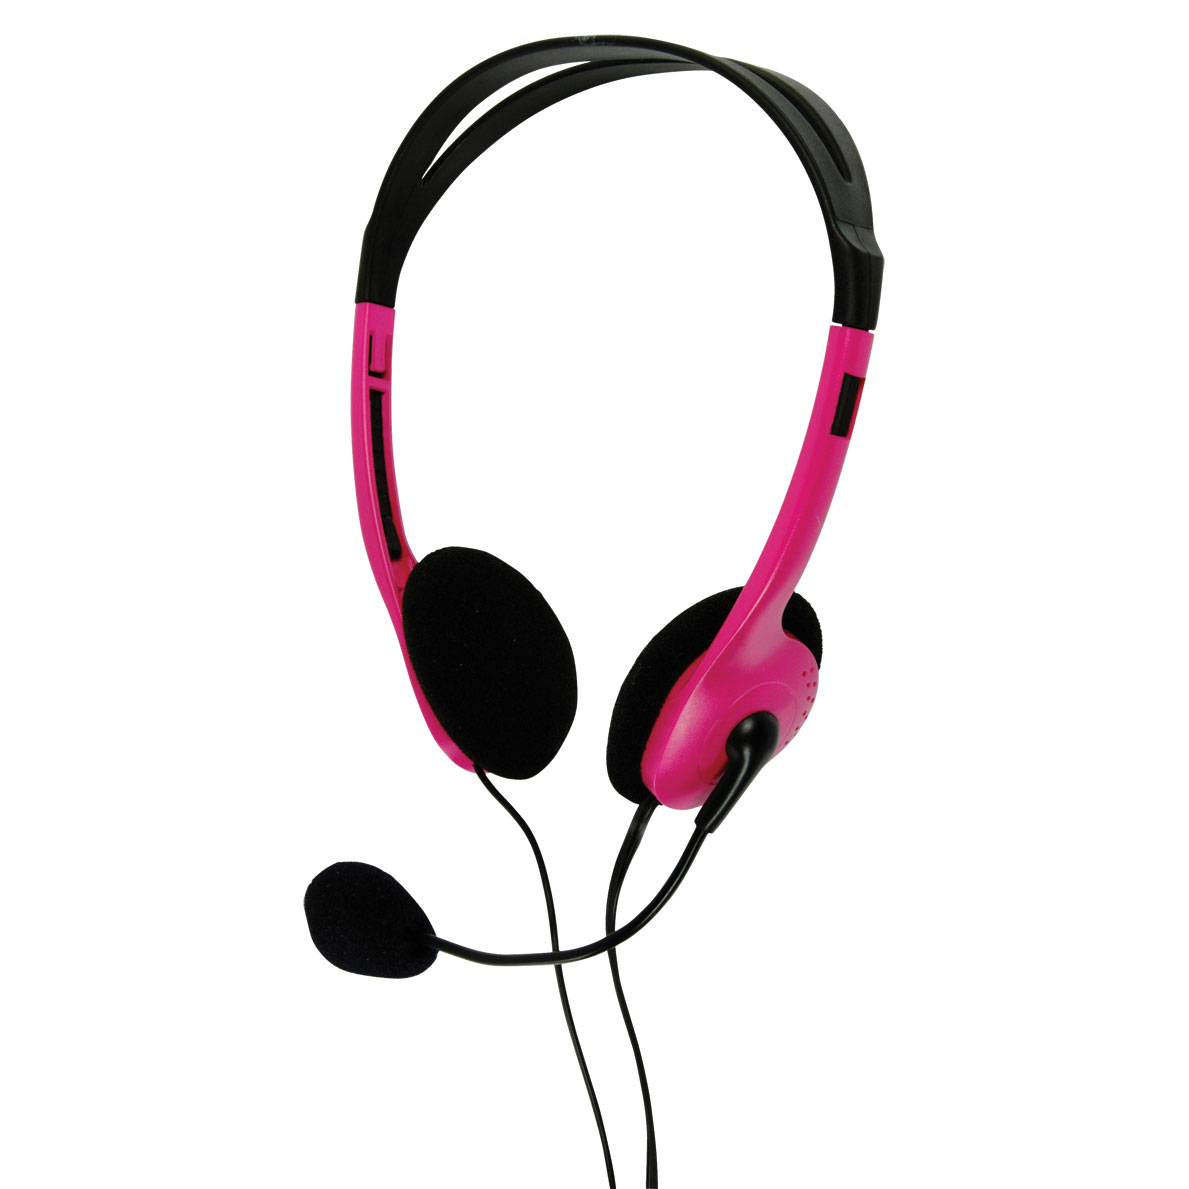 Multimedia Headphones with Flexible Microphone - in Pink - BXL-HEADSET1PI